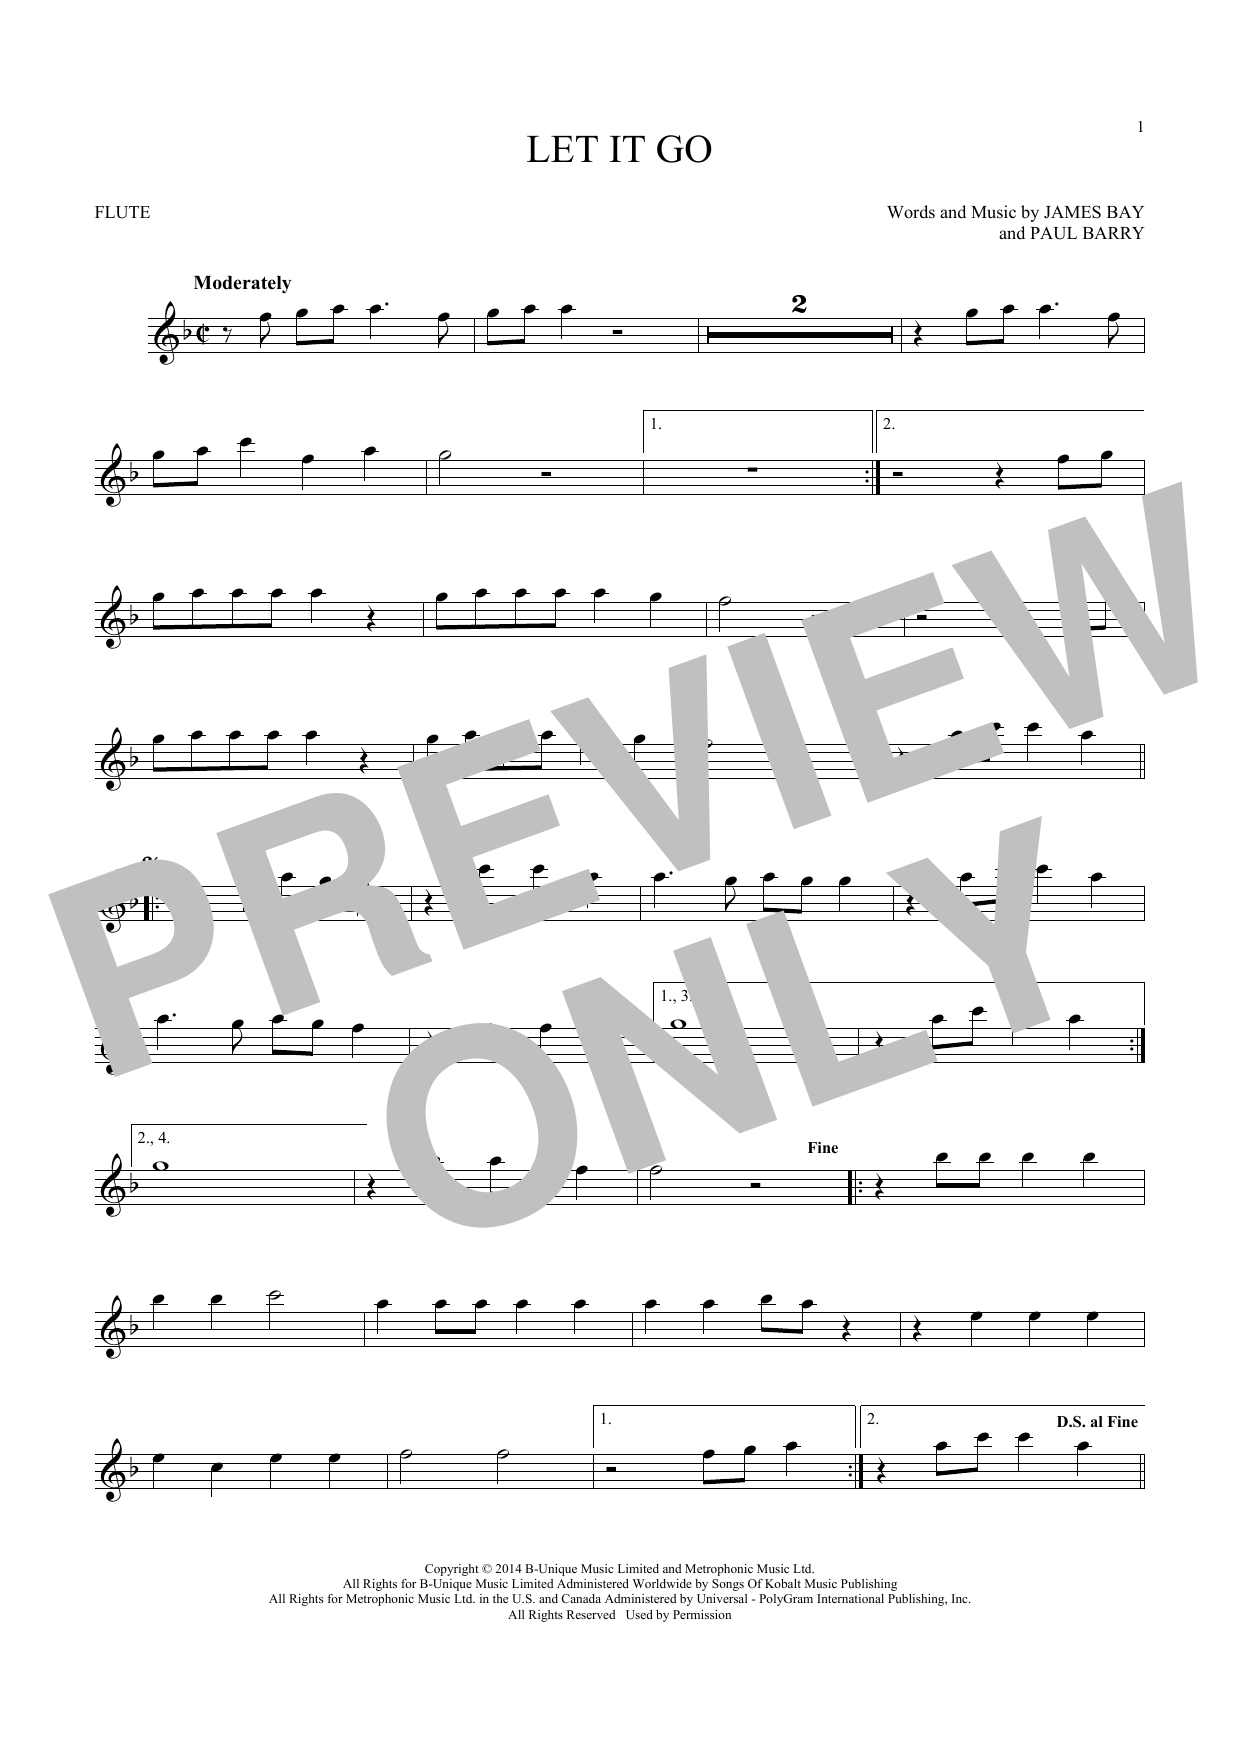 James Bay 'Let It Go' Sheet Music Notes, Chords | Download Printable Flute  - SKU: 181249